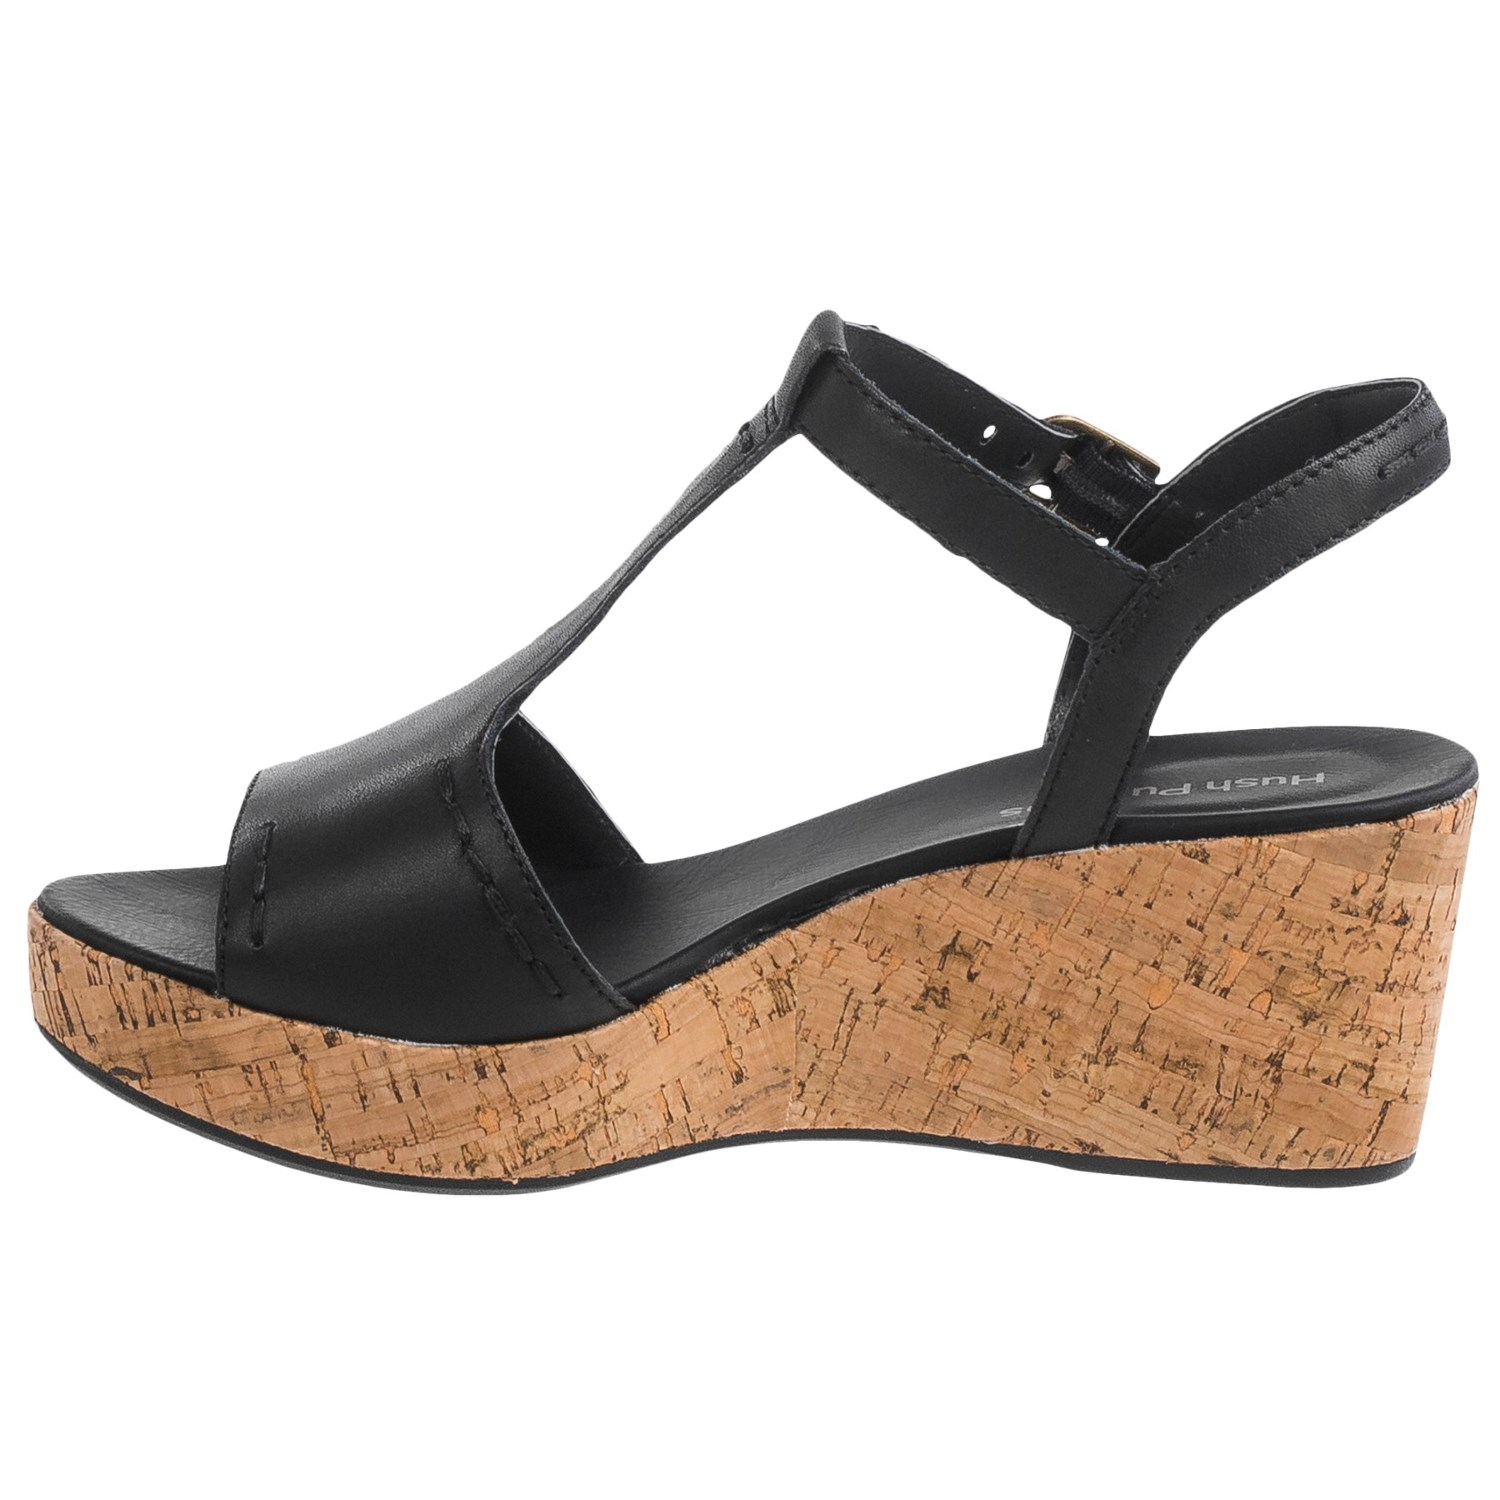 hush puppies blakely durante wedge sandals  for women